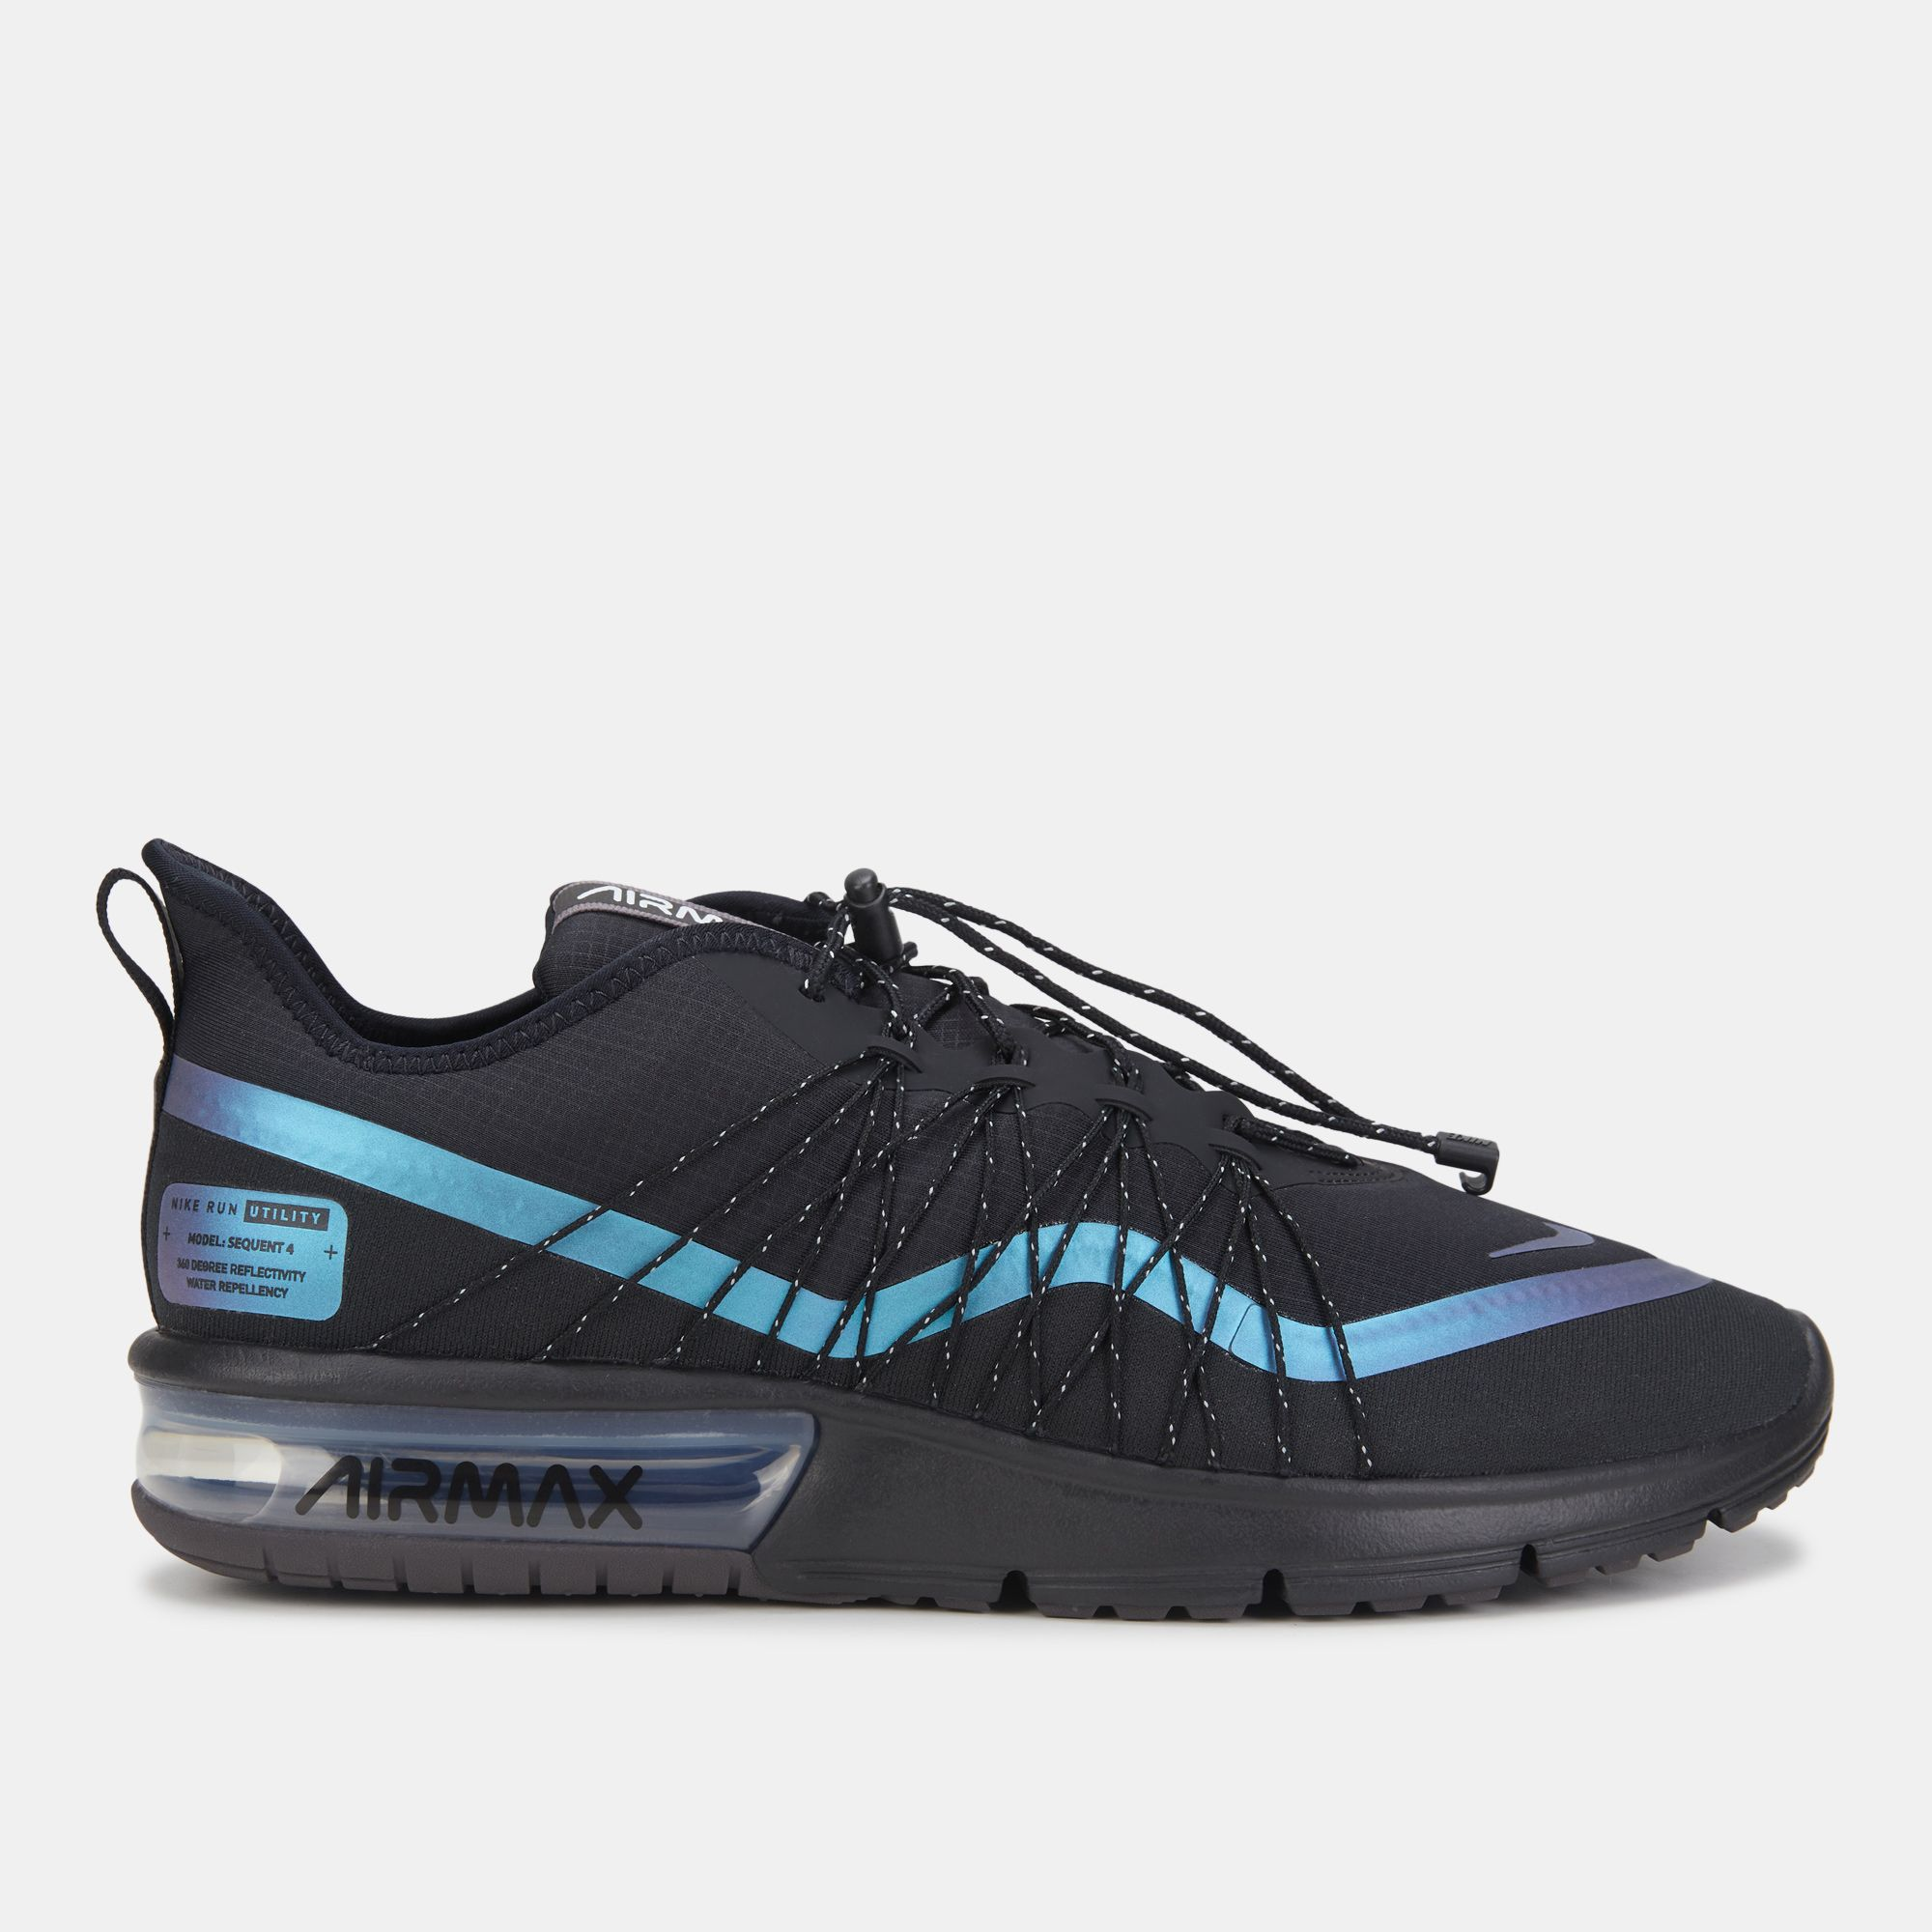 ba83b62d79 Nike Air Max Men's Sequent 4 Utility Shoe | Running Shoes | Shoes ...